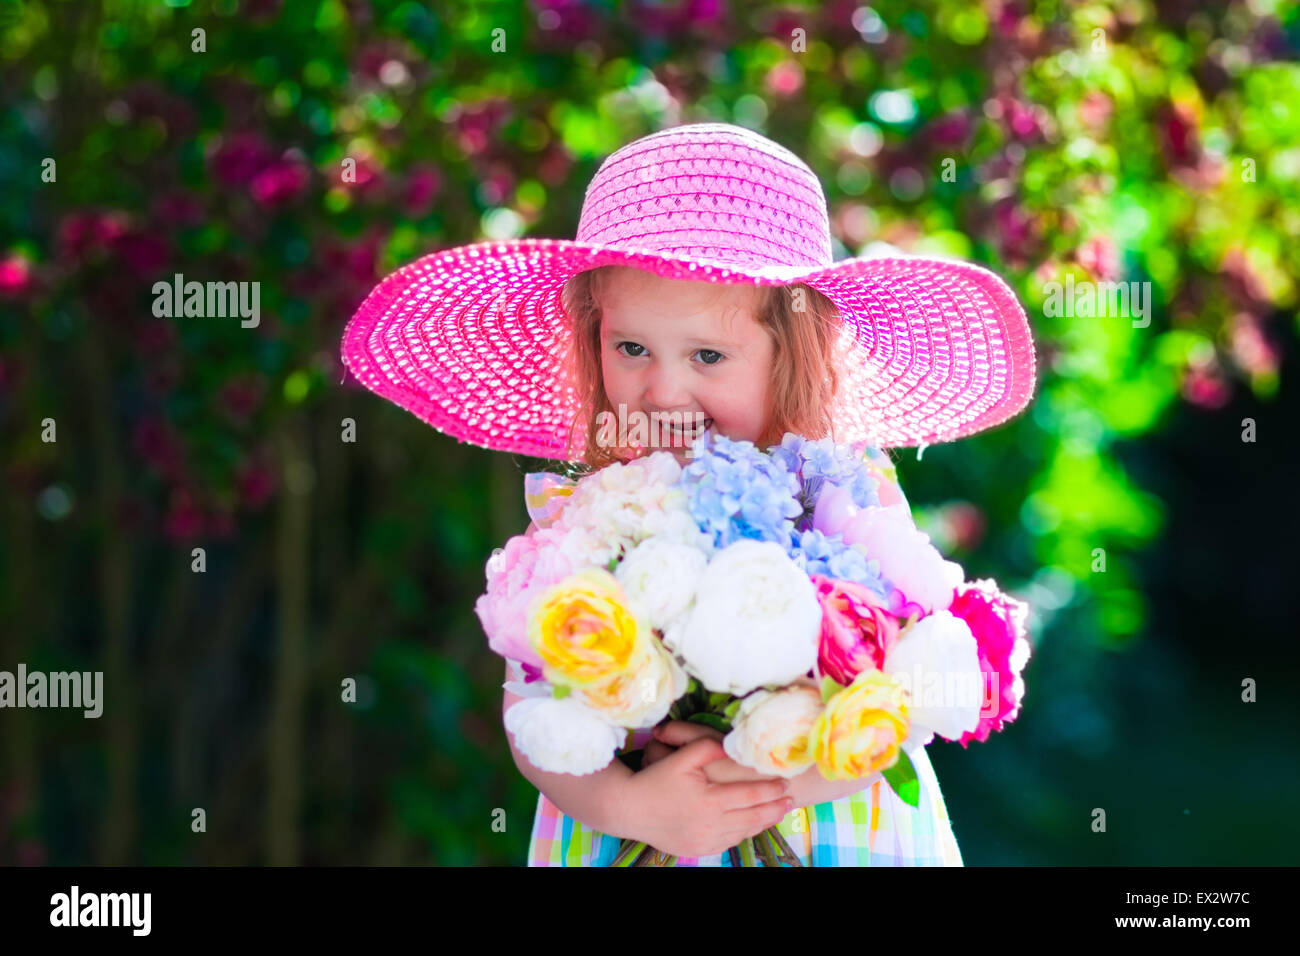 Kids Background With Flowers Stock Photos Kids Background With